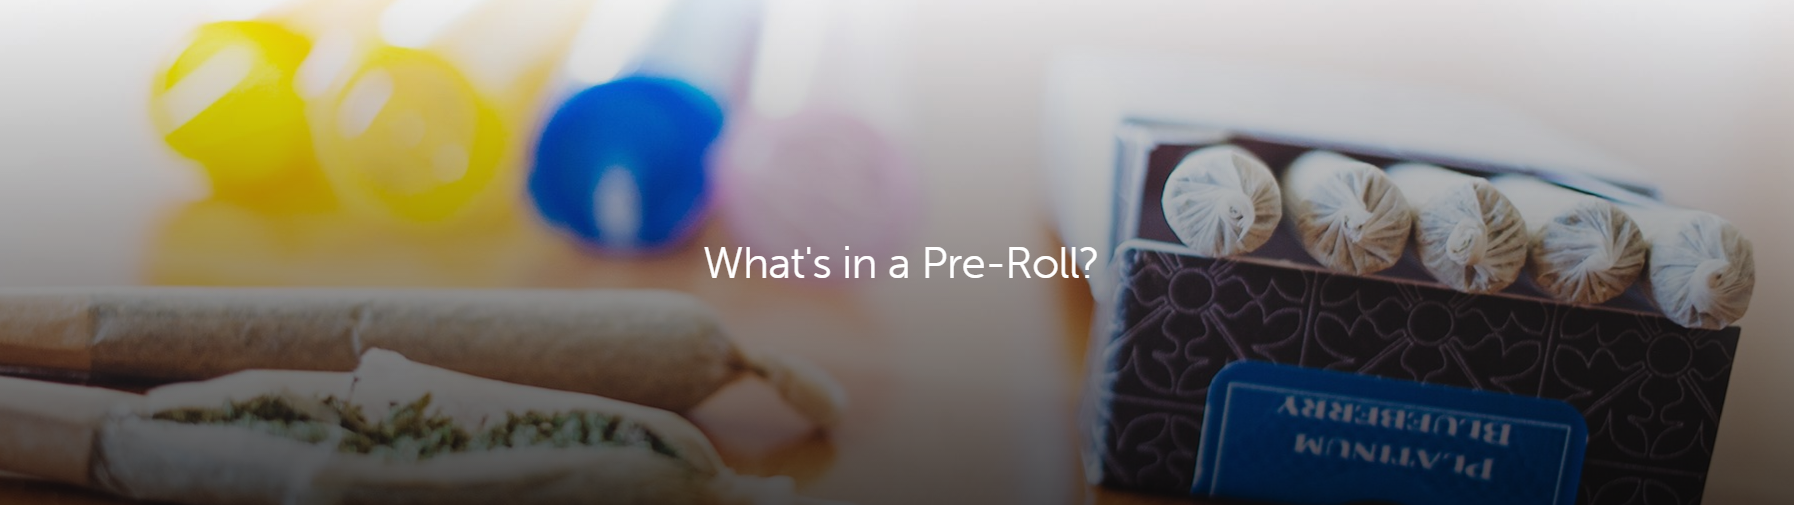 what is in a cannabis pre-roll